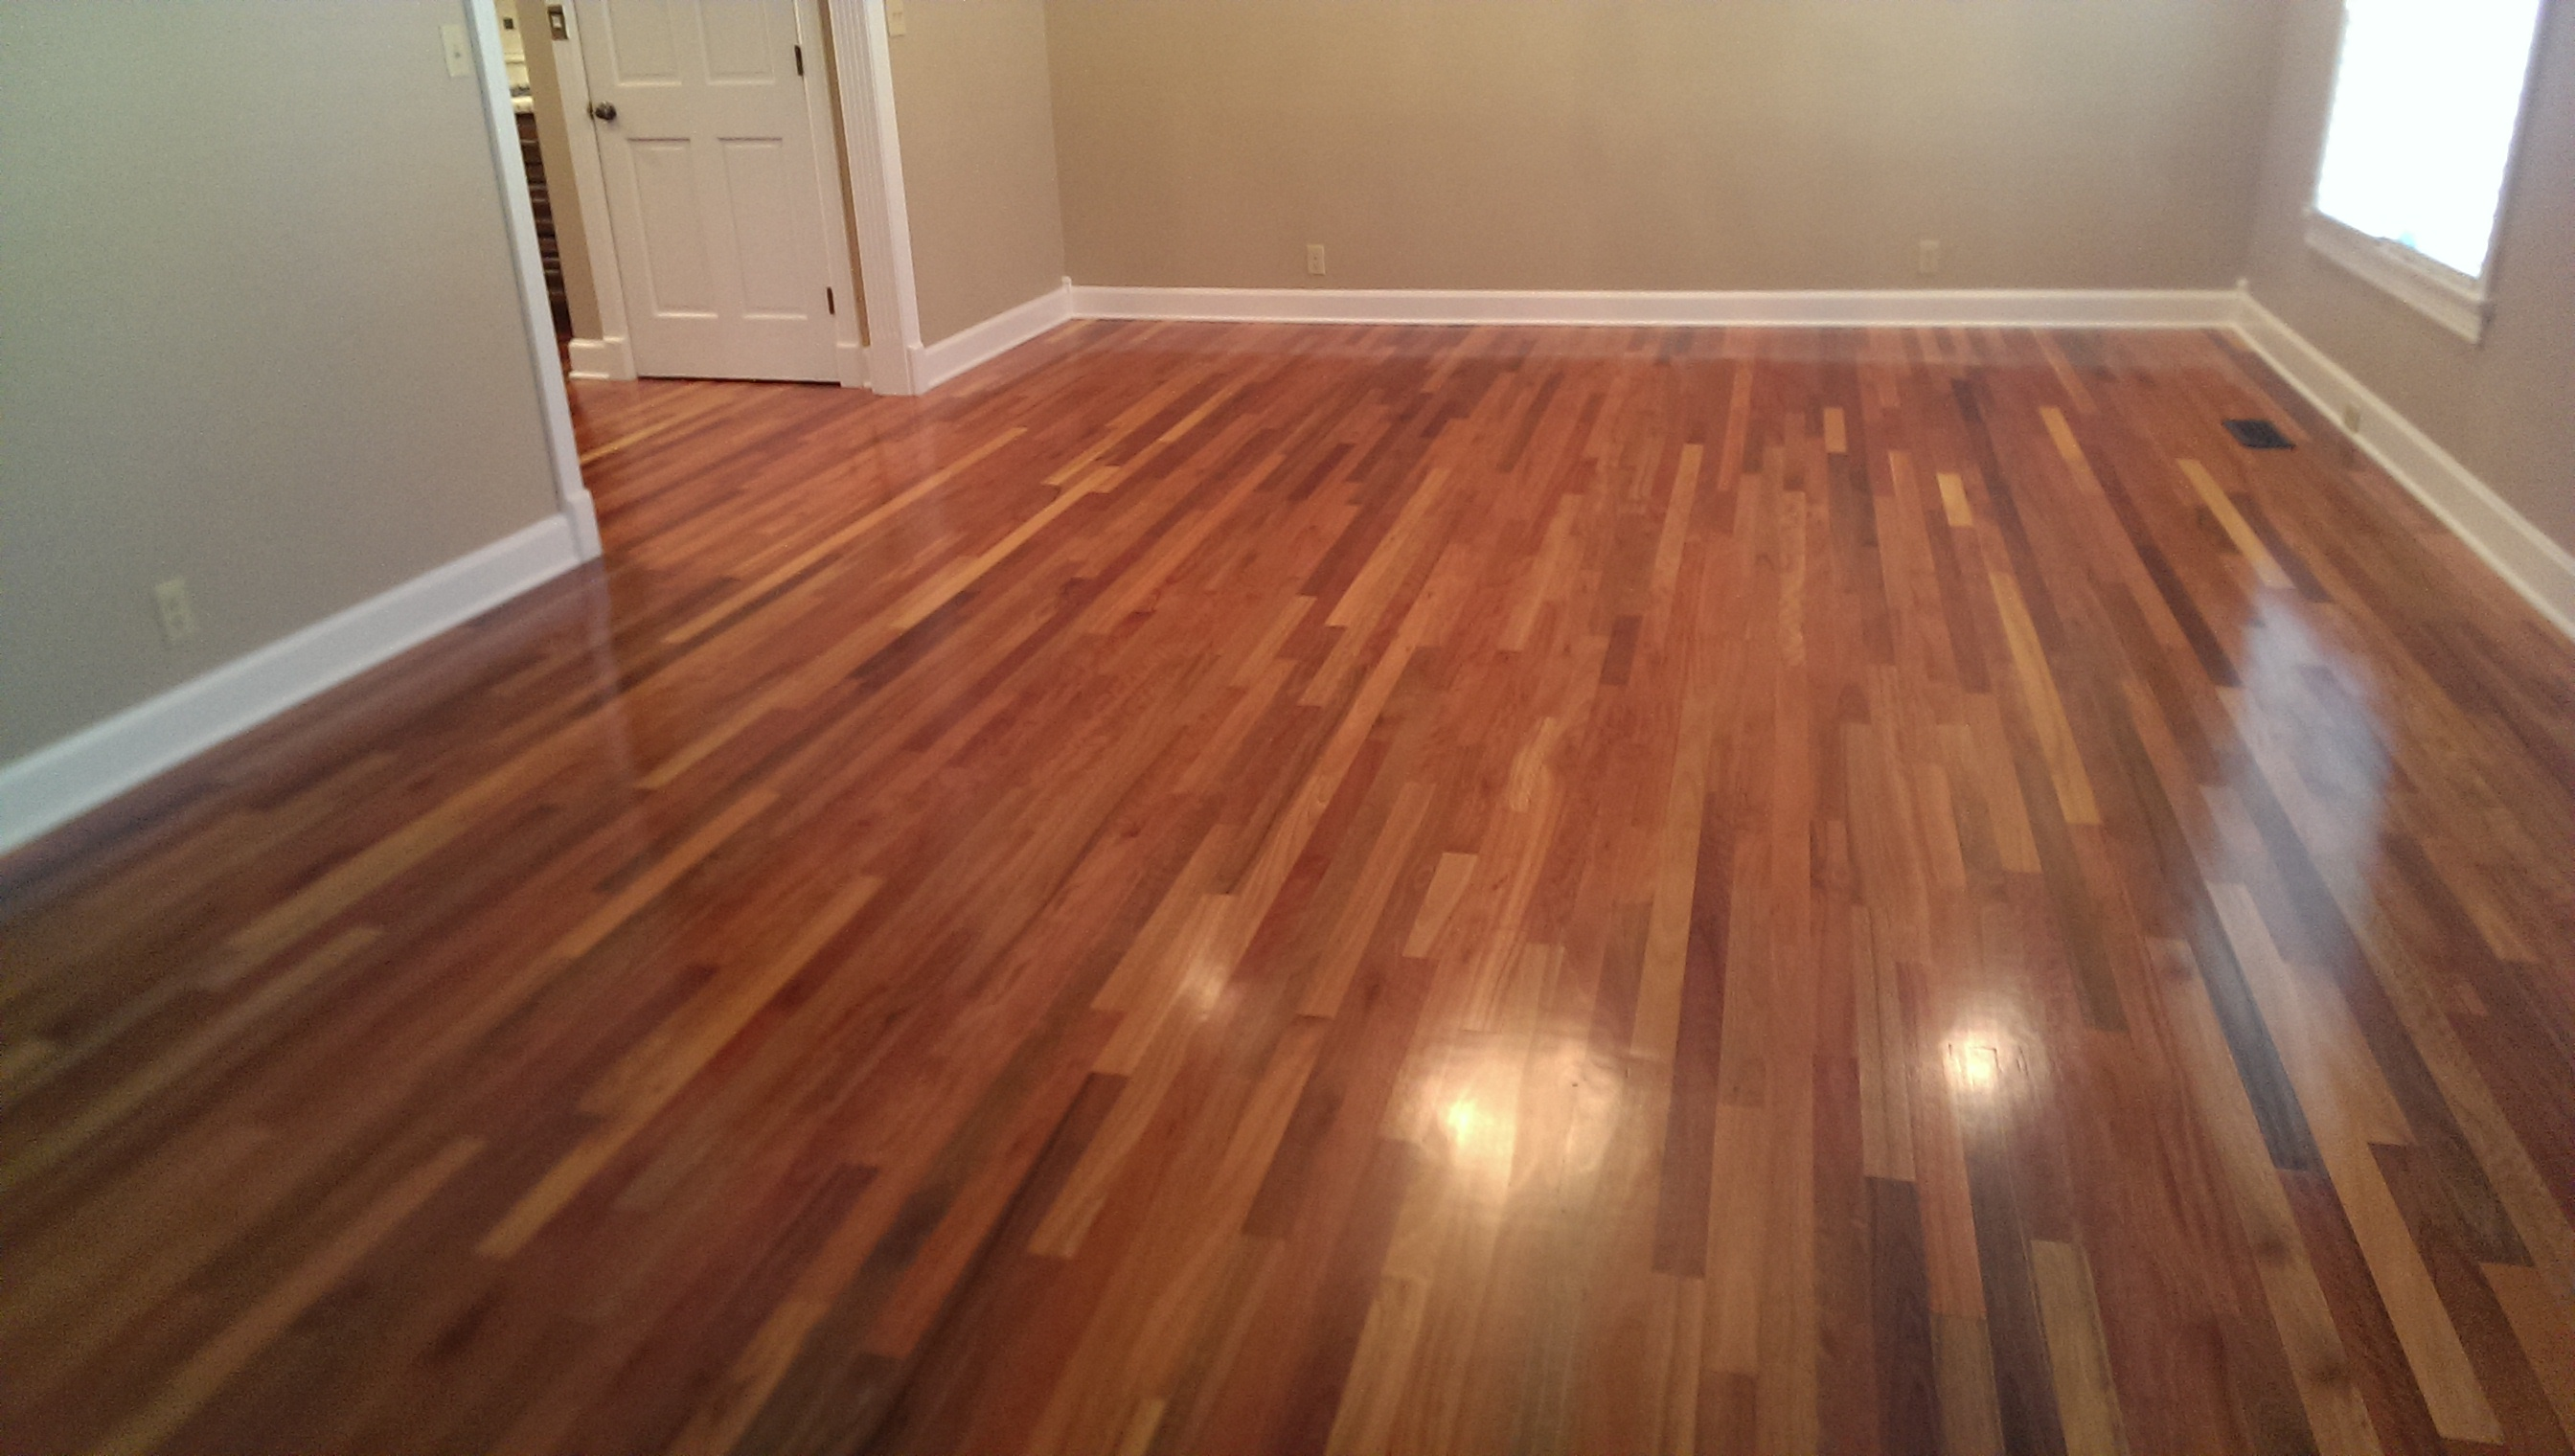 River city flooring inc coupons near me in louisville for Flooring places near me